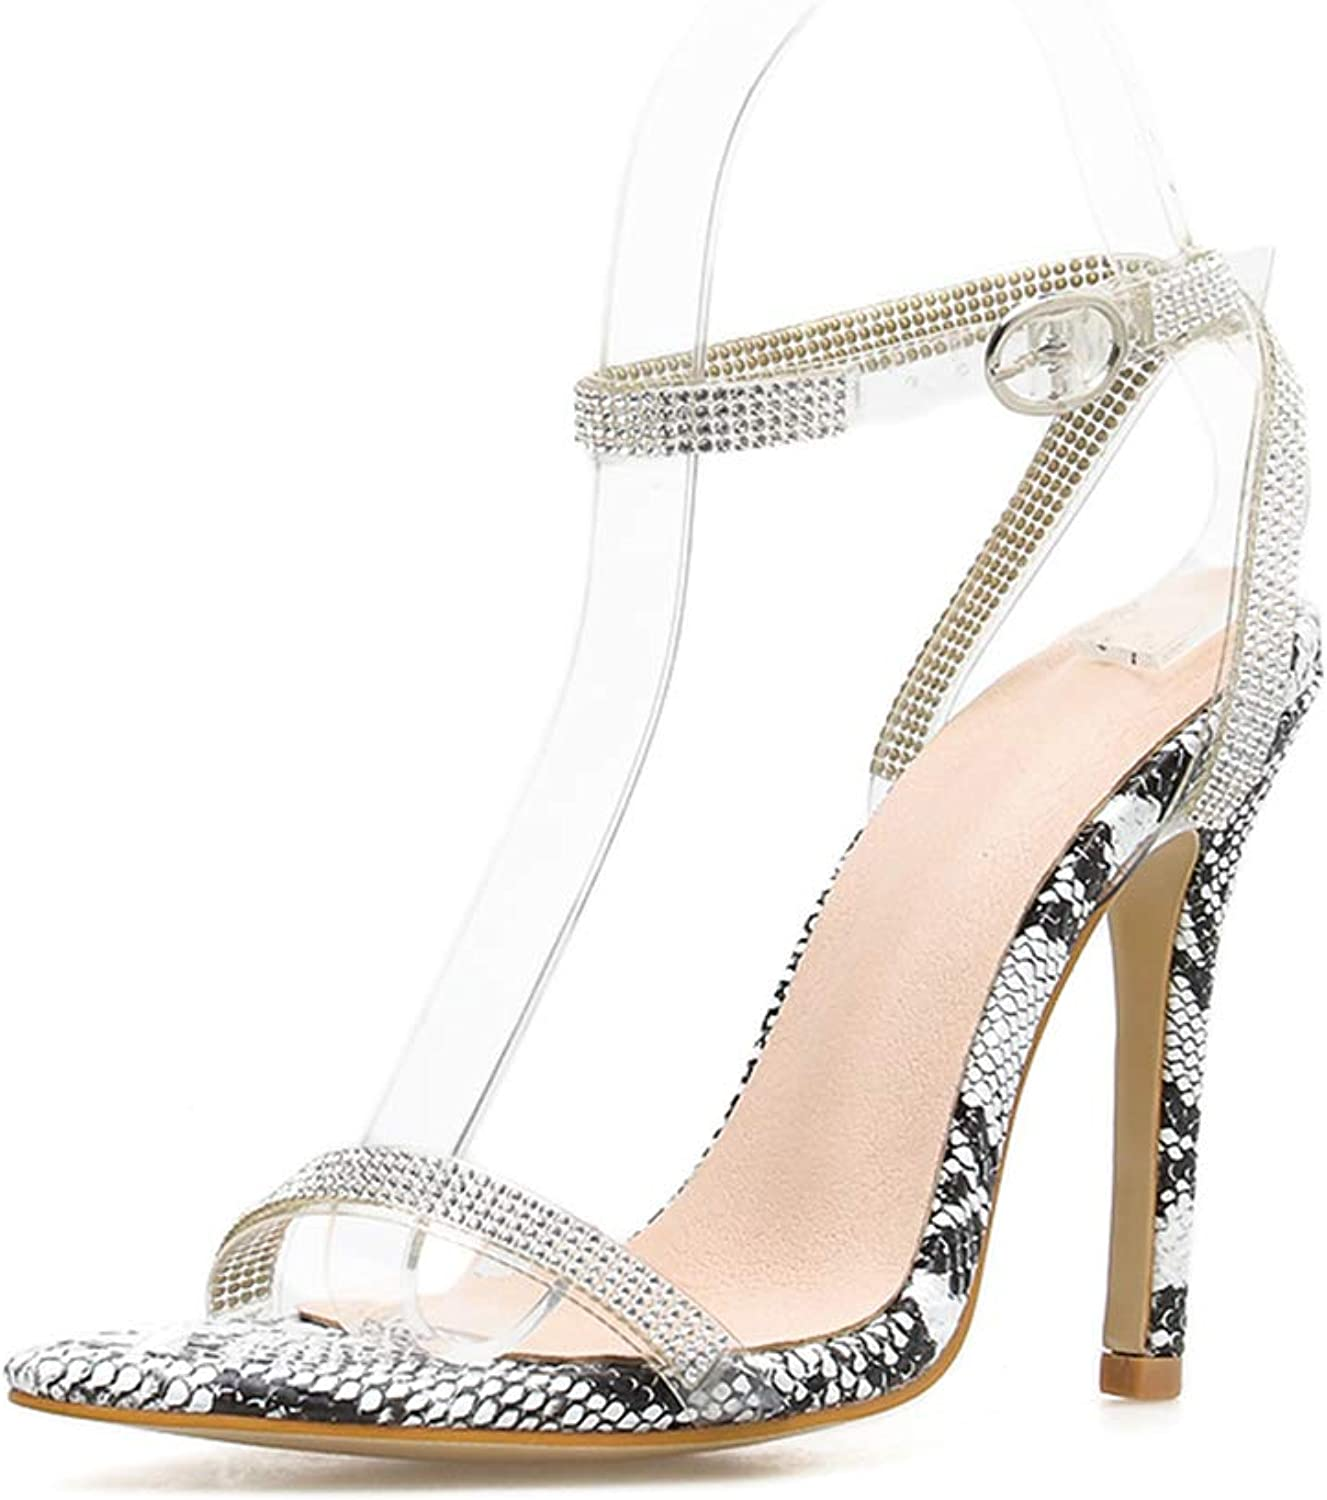 Women's Snake Pointed High Heels Open Toe Pointed Toe Transparent Ankle Strap Mid Heel Low Kitten Dress Pump shoes,36